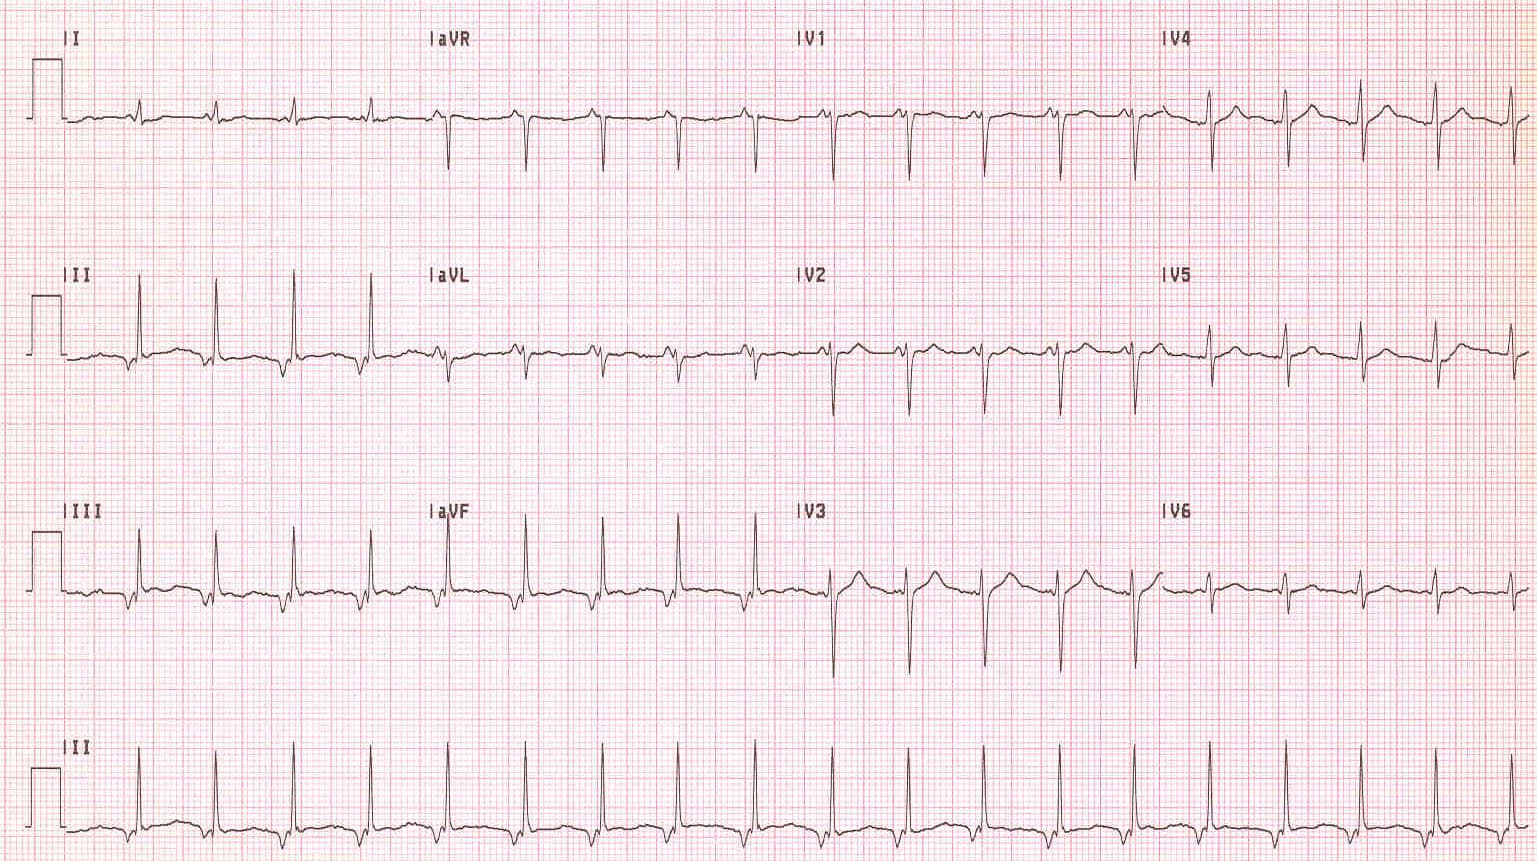 Accelerated junctional rhythm is present in this patient  Note the    Accelerated Junctional Rhythm